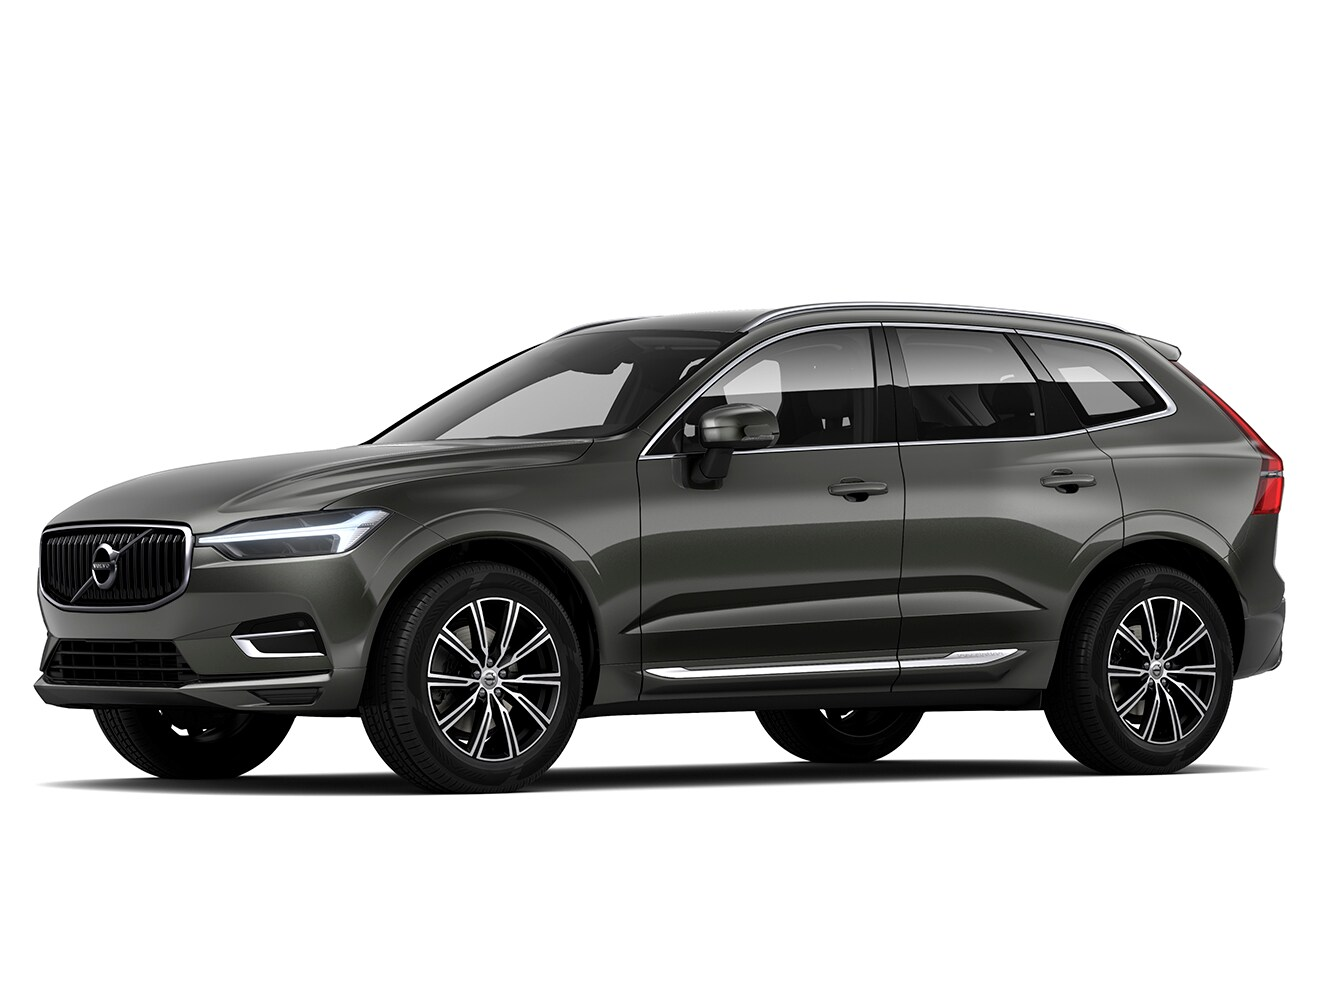 The new Volvo XC60 Incription trim